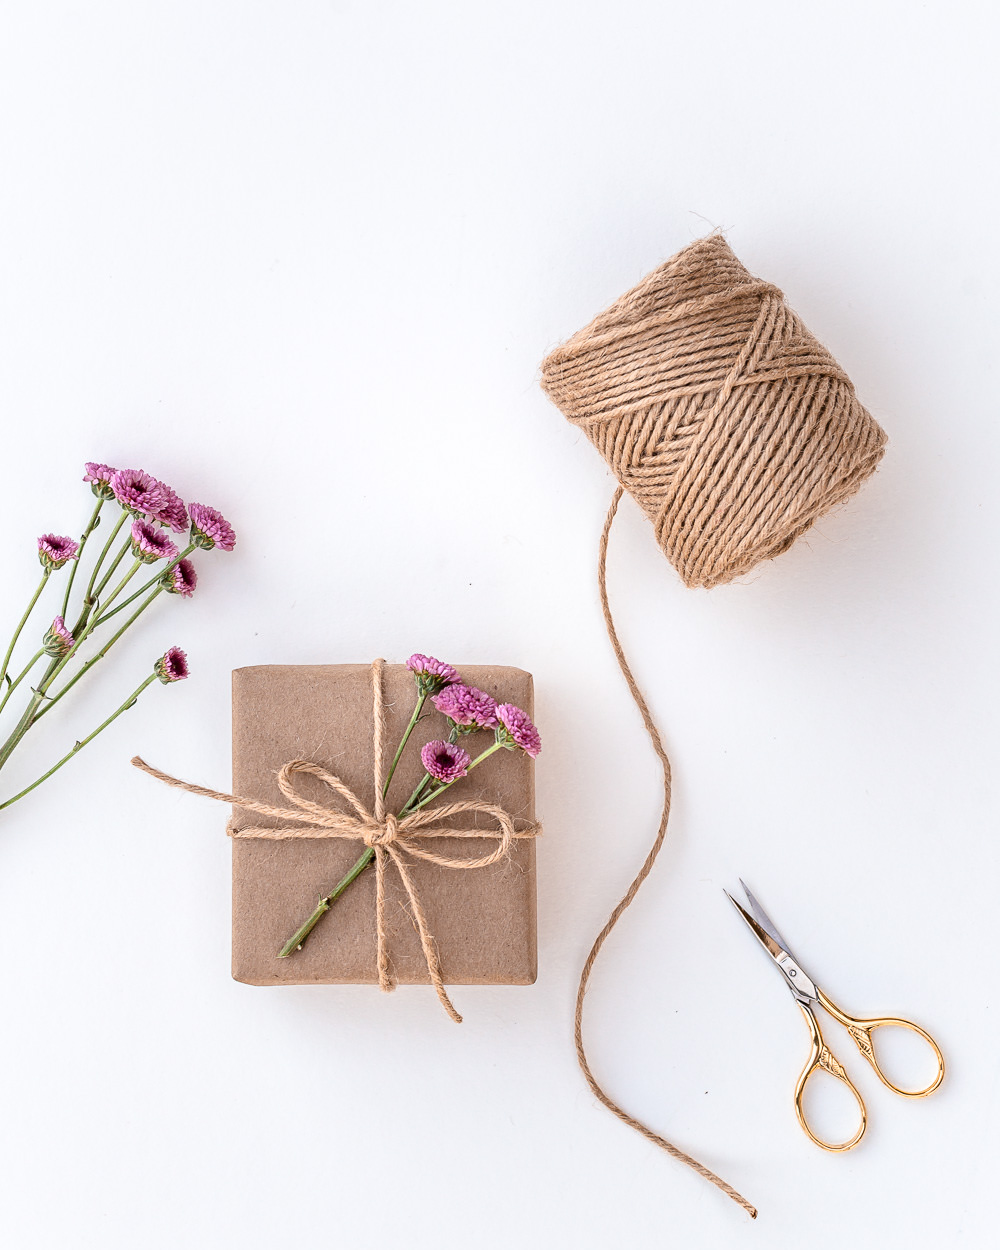 Eco-friendly gift wrapping with twine and flowers